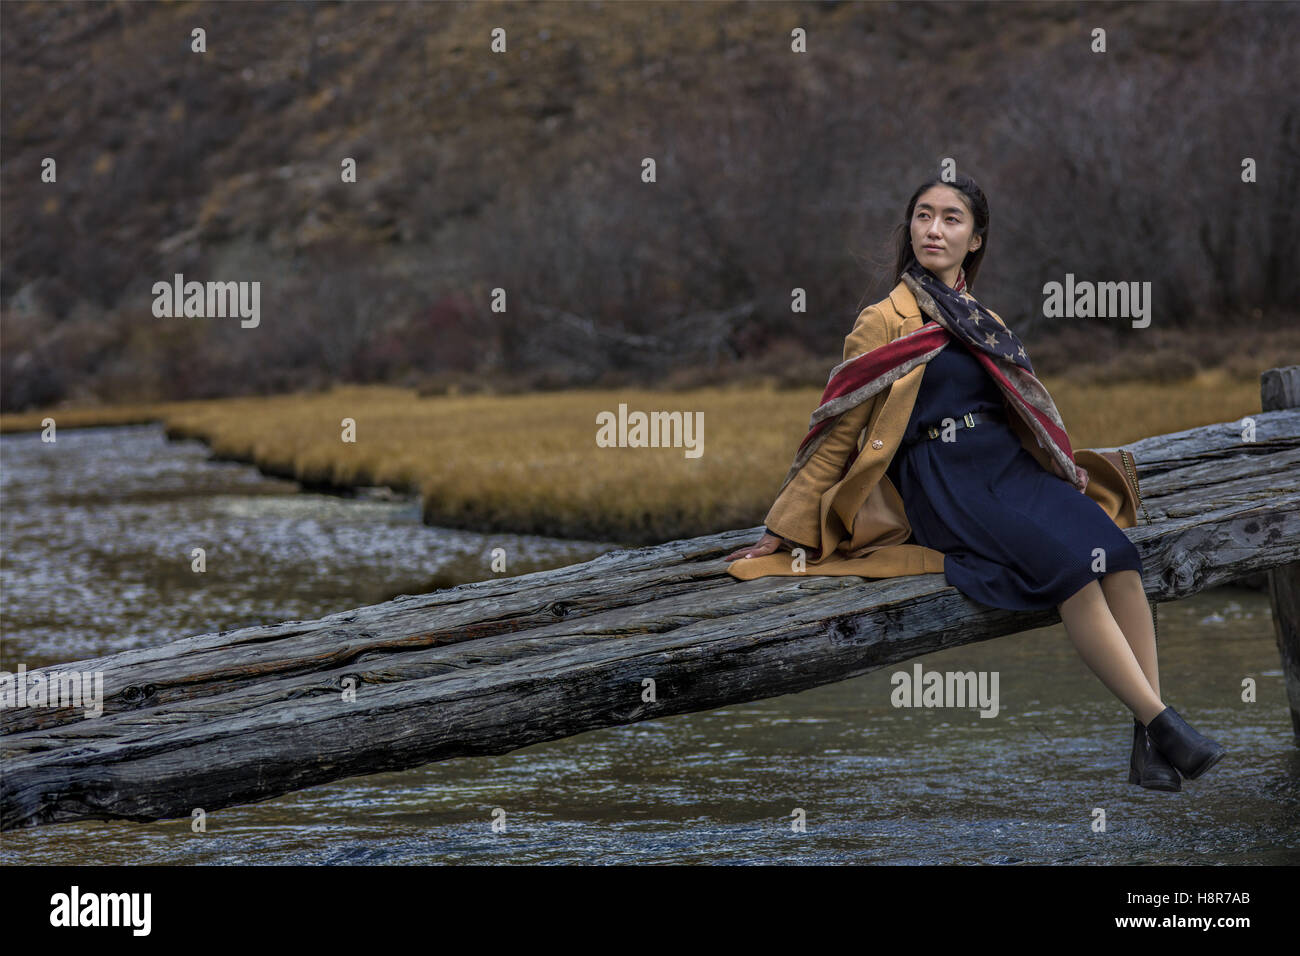 Sichuan, Sichuan, China. 26th Oct, 2016. Sichuan, CHINA-October 26 2016: (EDITORIAL USE ONLY. CHINA OUT) A young - Stock Image